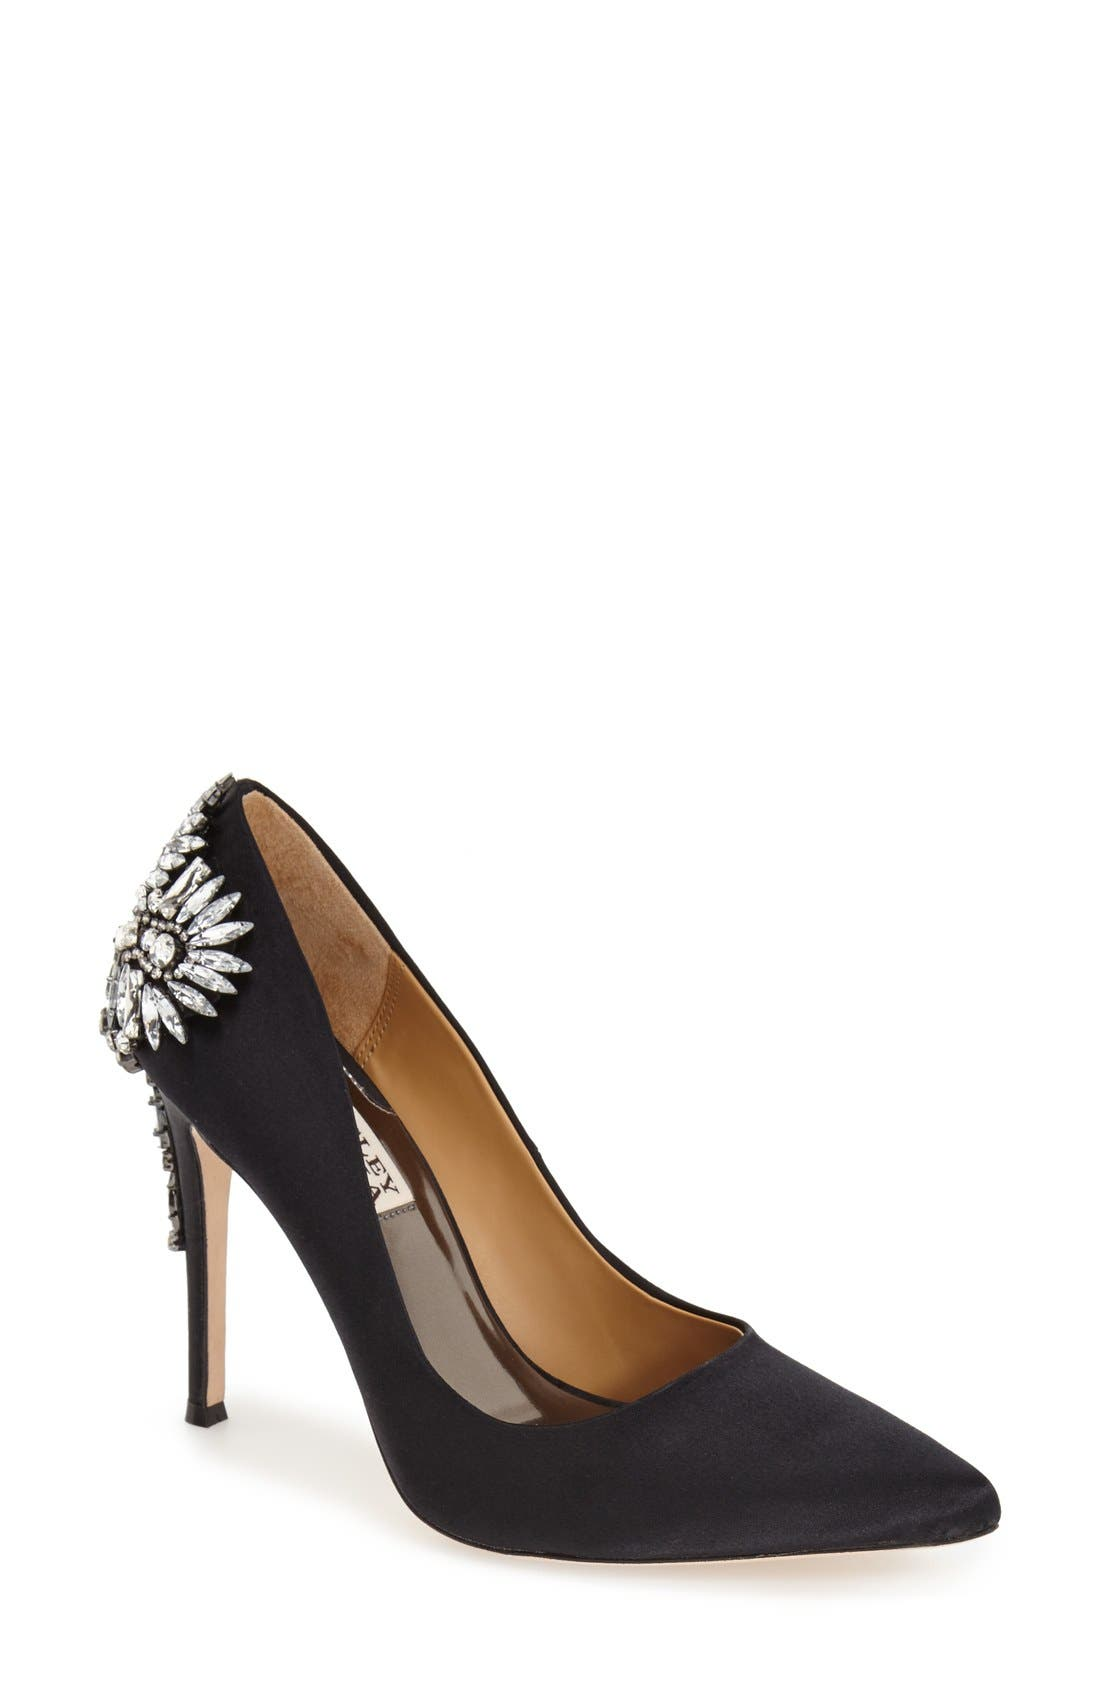 BADGLEY MISCHKA COLLECTION, Badgley Mischka 'Poetry' Pump, Main thumbnail 1, color, 001